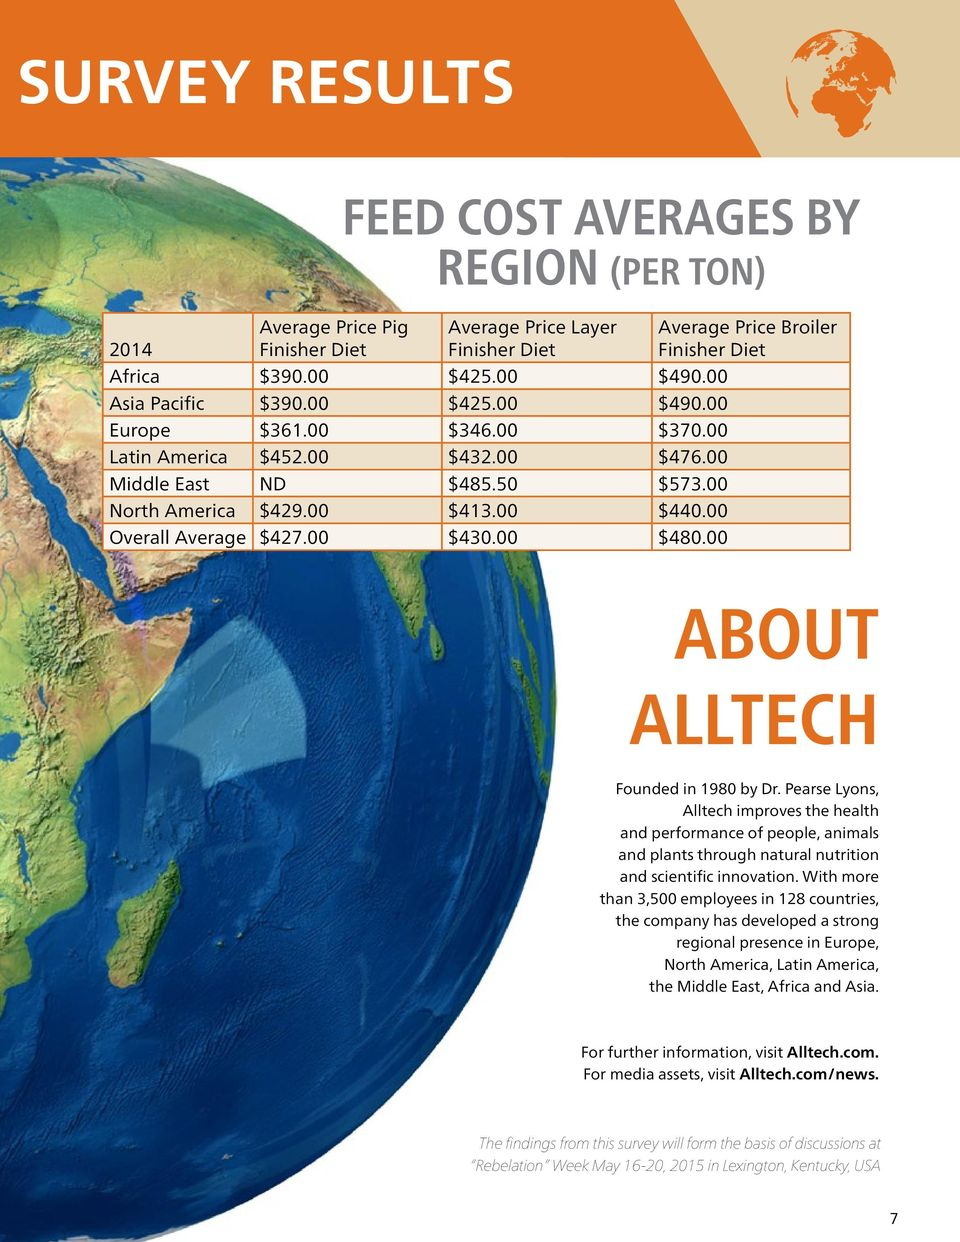 00 Average Price Broiler Finisher Diet ABOUT ALLTECH Founded in 1980 by Dr.